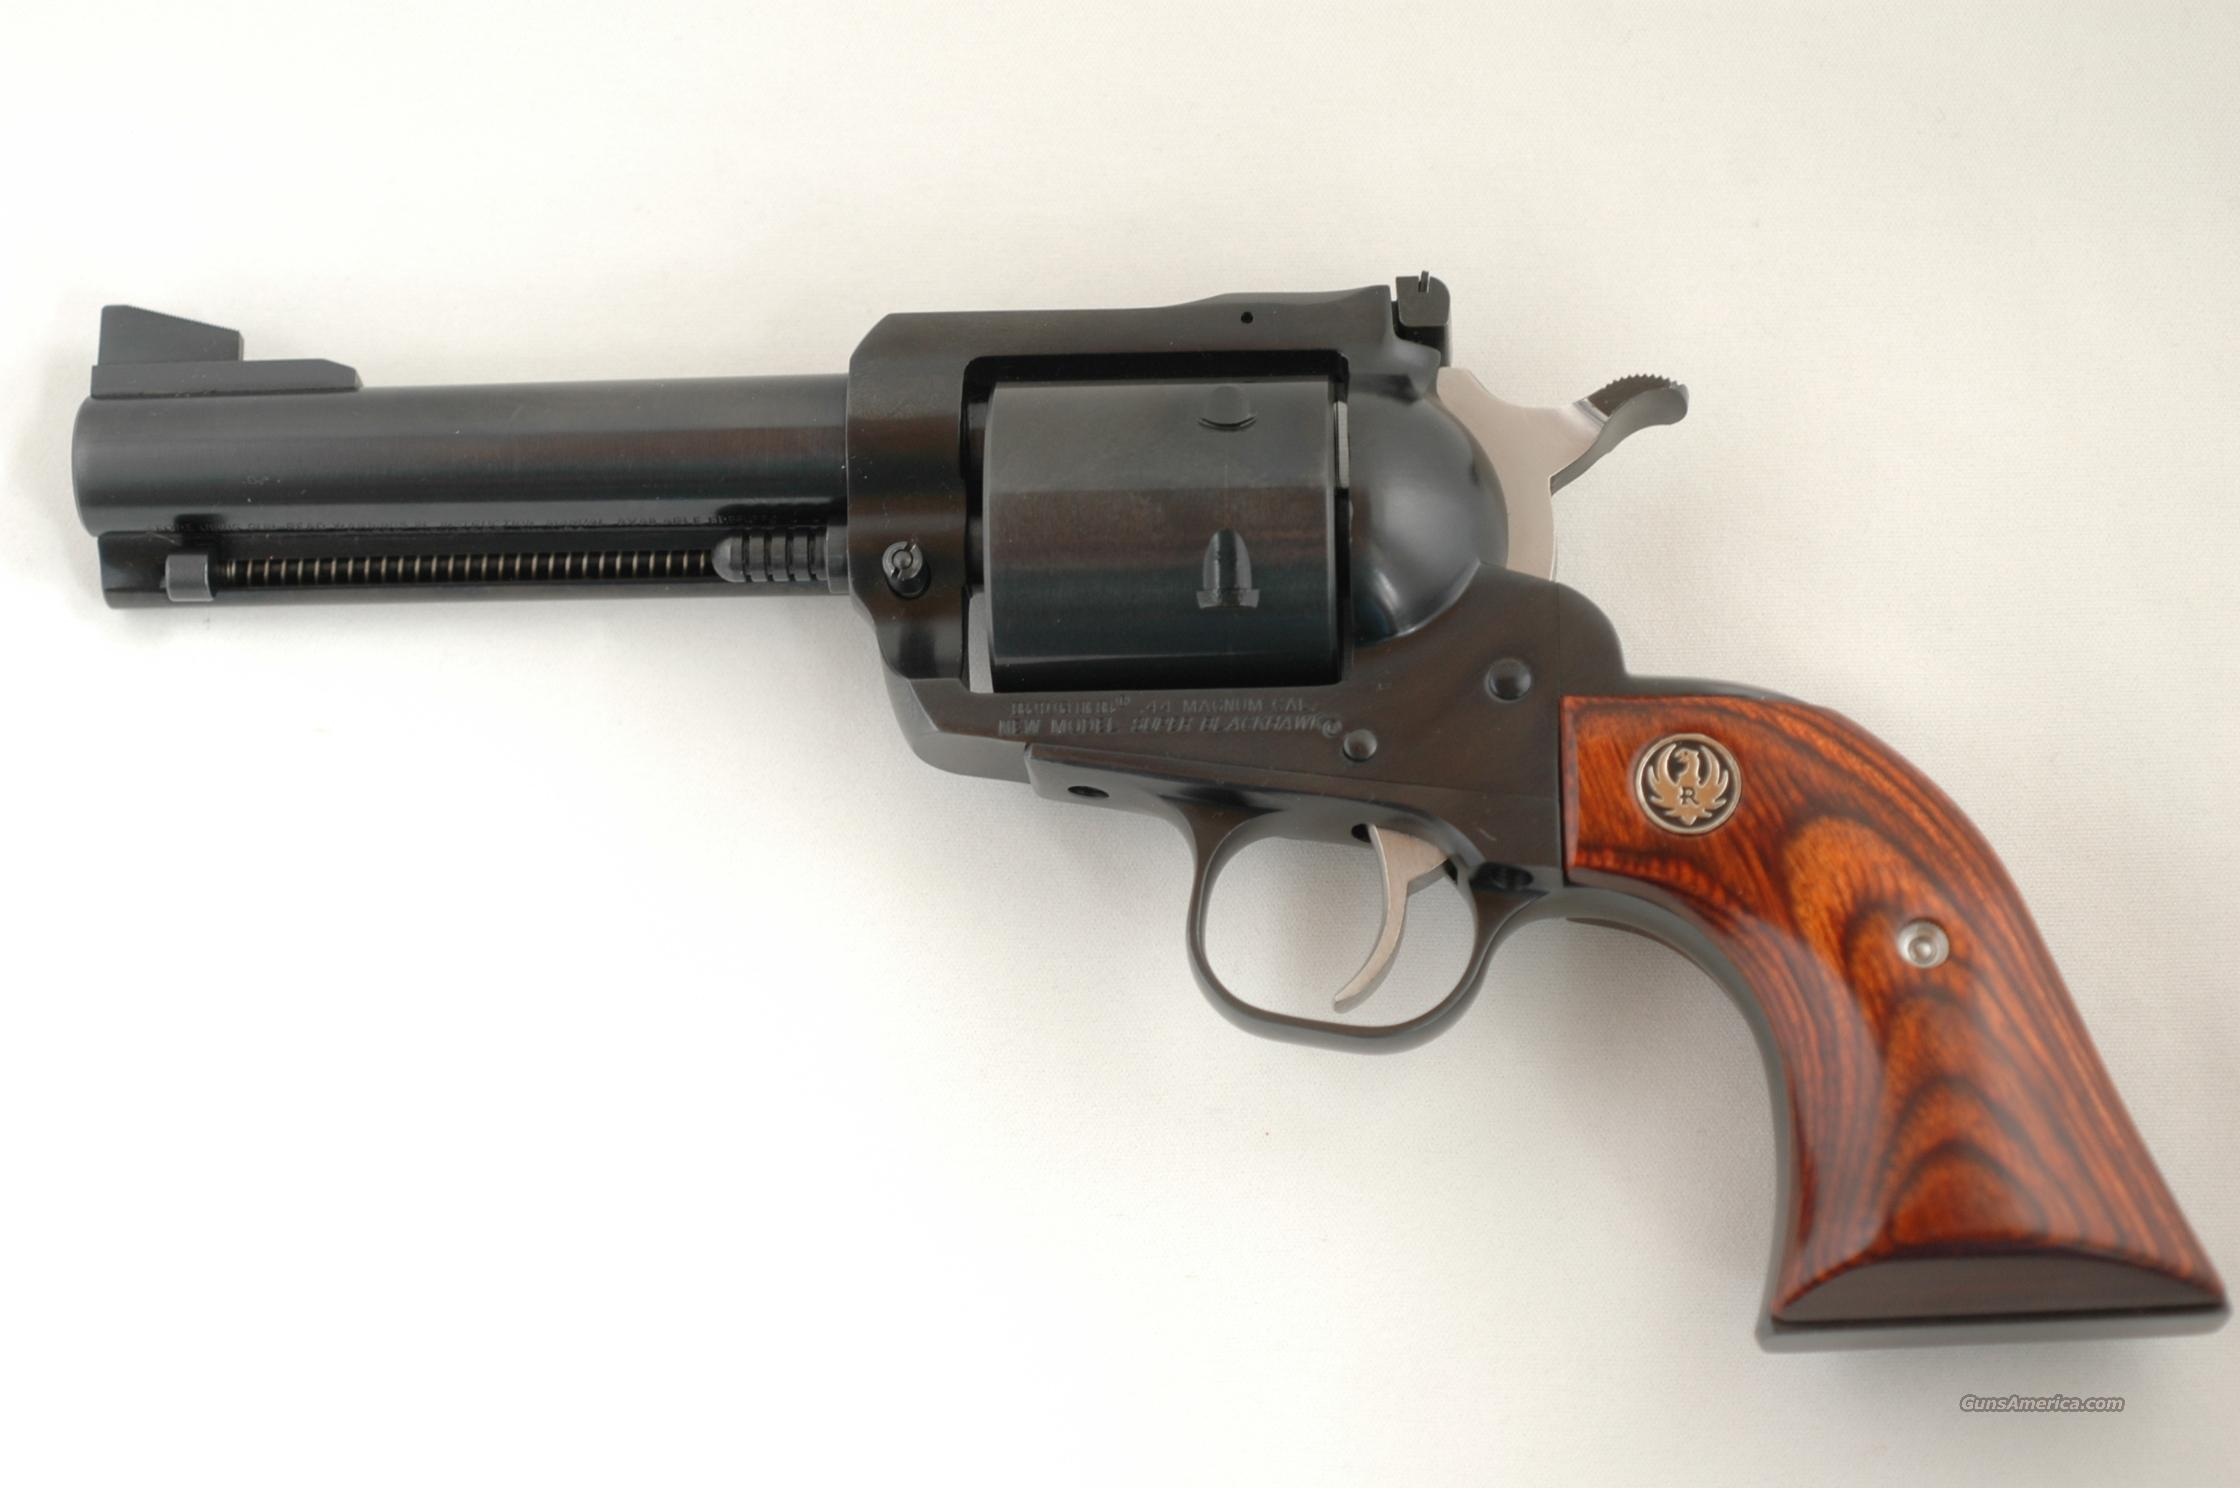 NEW MODEL RUGER SUPER BLACKHAWK 44 MAG BLUE  Guns > Pistols > Ruger Single Action Revolvers > Blackhawk Type